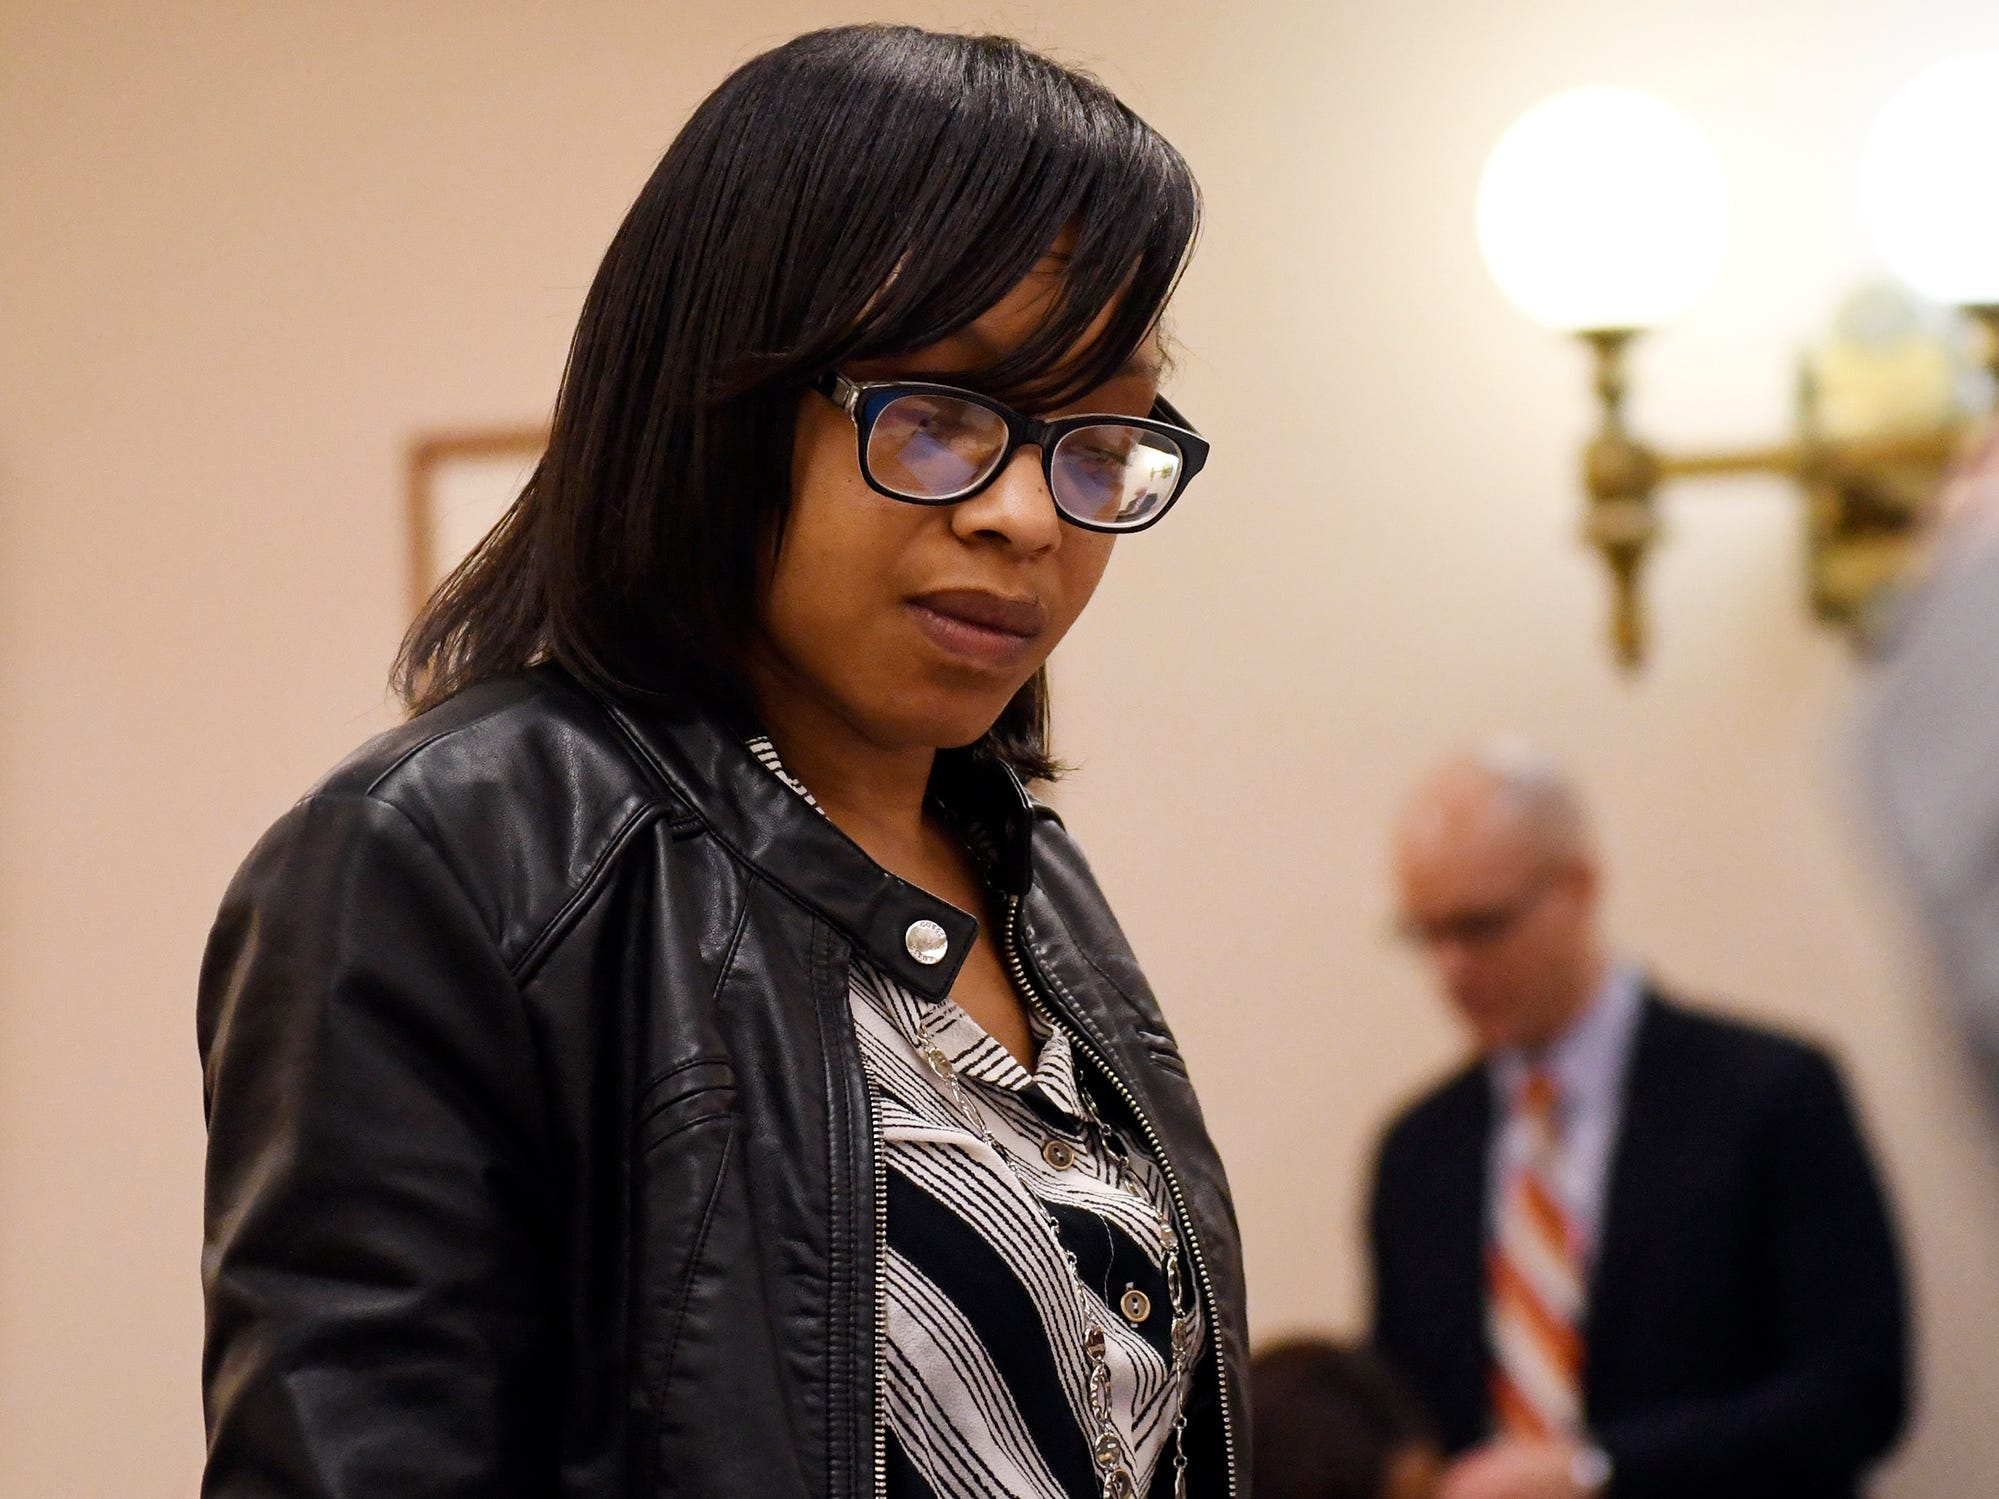 Genea Hughes-Lee appears in Cumberland County Superior Court before Judge Michael Silvanio on Monday, March 4, 2019. Hughes-Lee has been charged with conspiracy to hinder apprehension, obstruction, and two counts of making false reports to law enforcement.